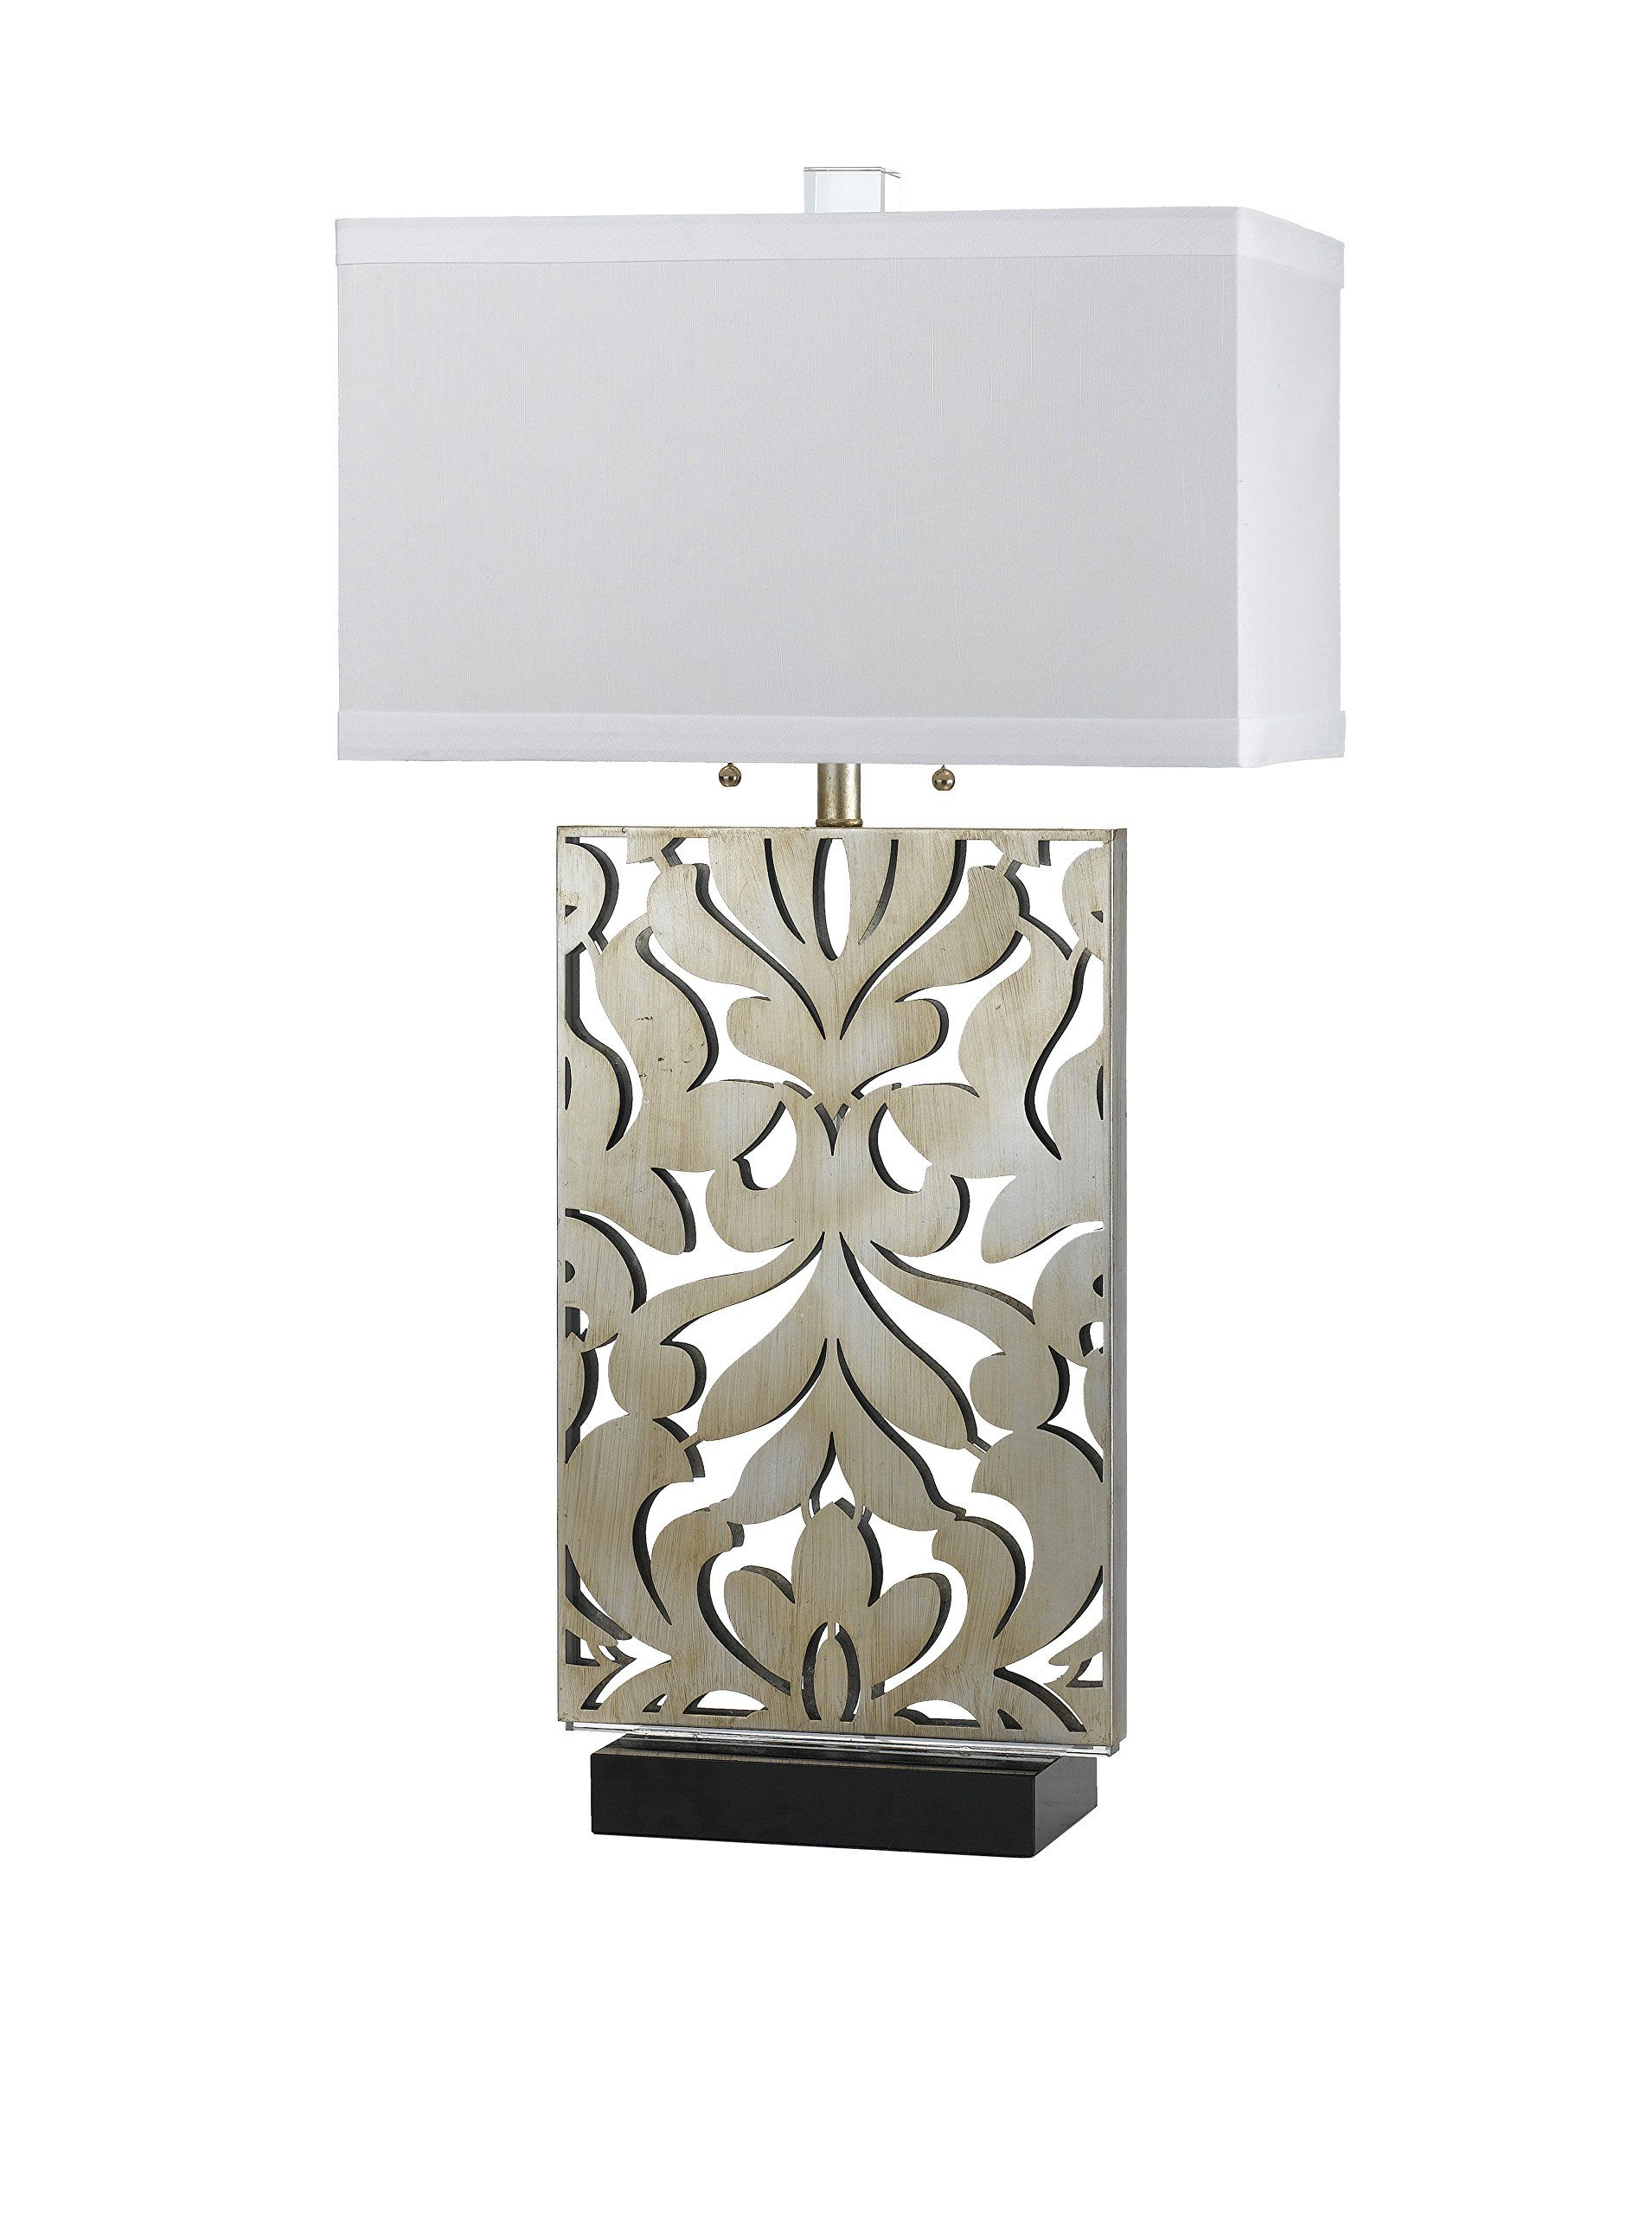 Candice olson daydream table lamp glint at myhabit candice olson daydream table lamp glint at myhabit geotapseo Image collections